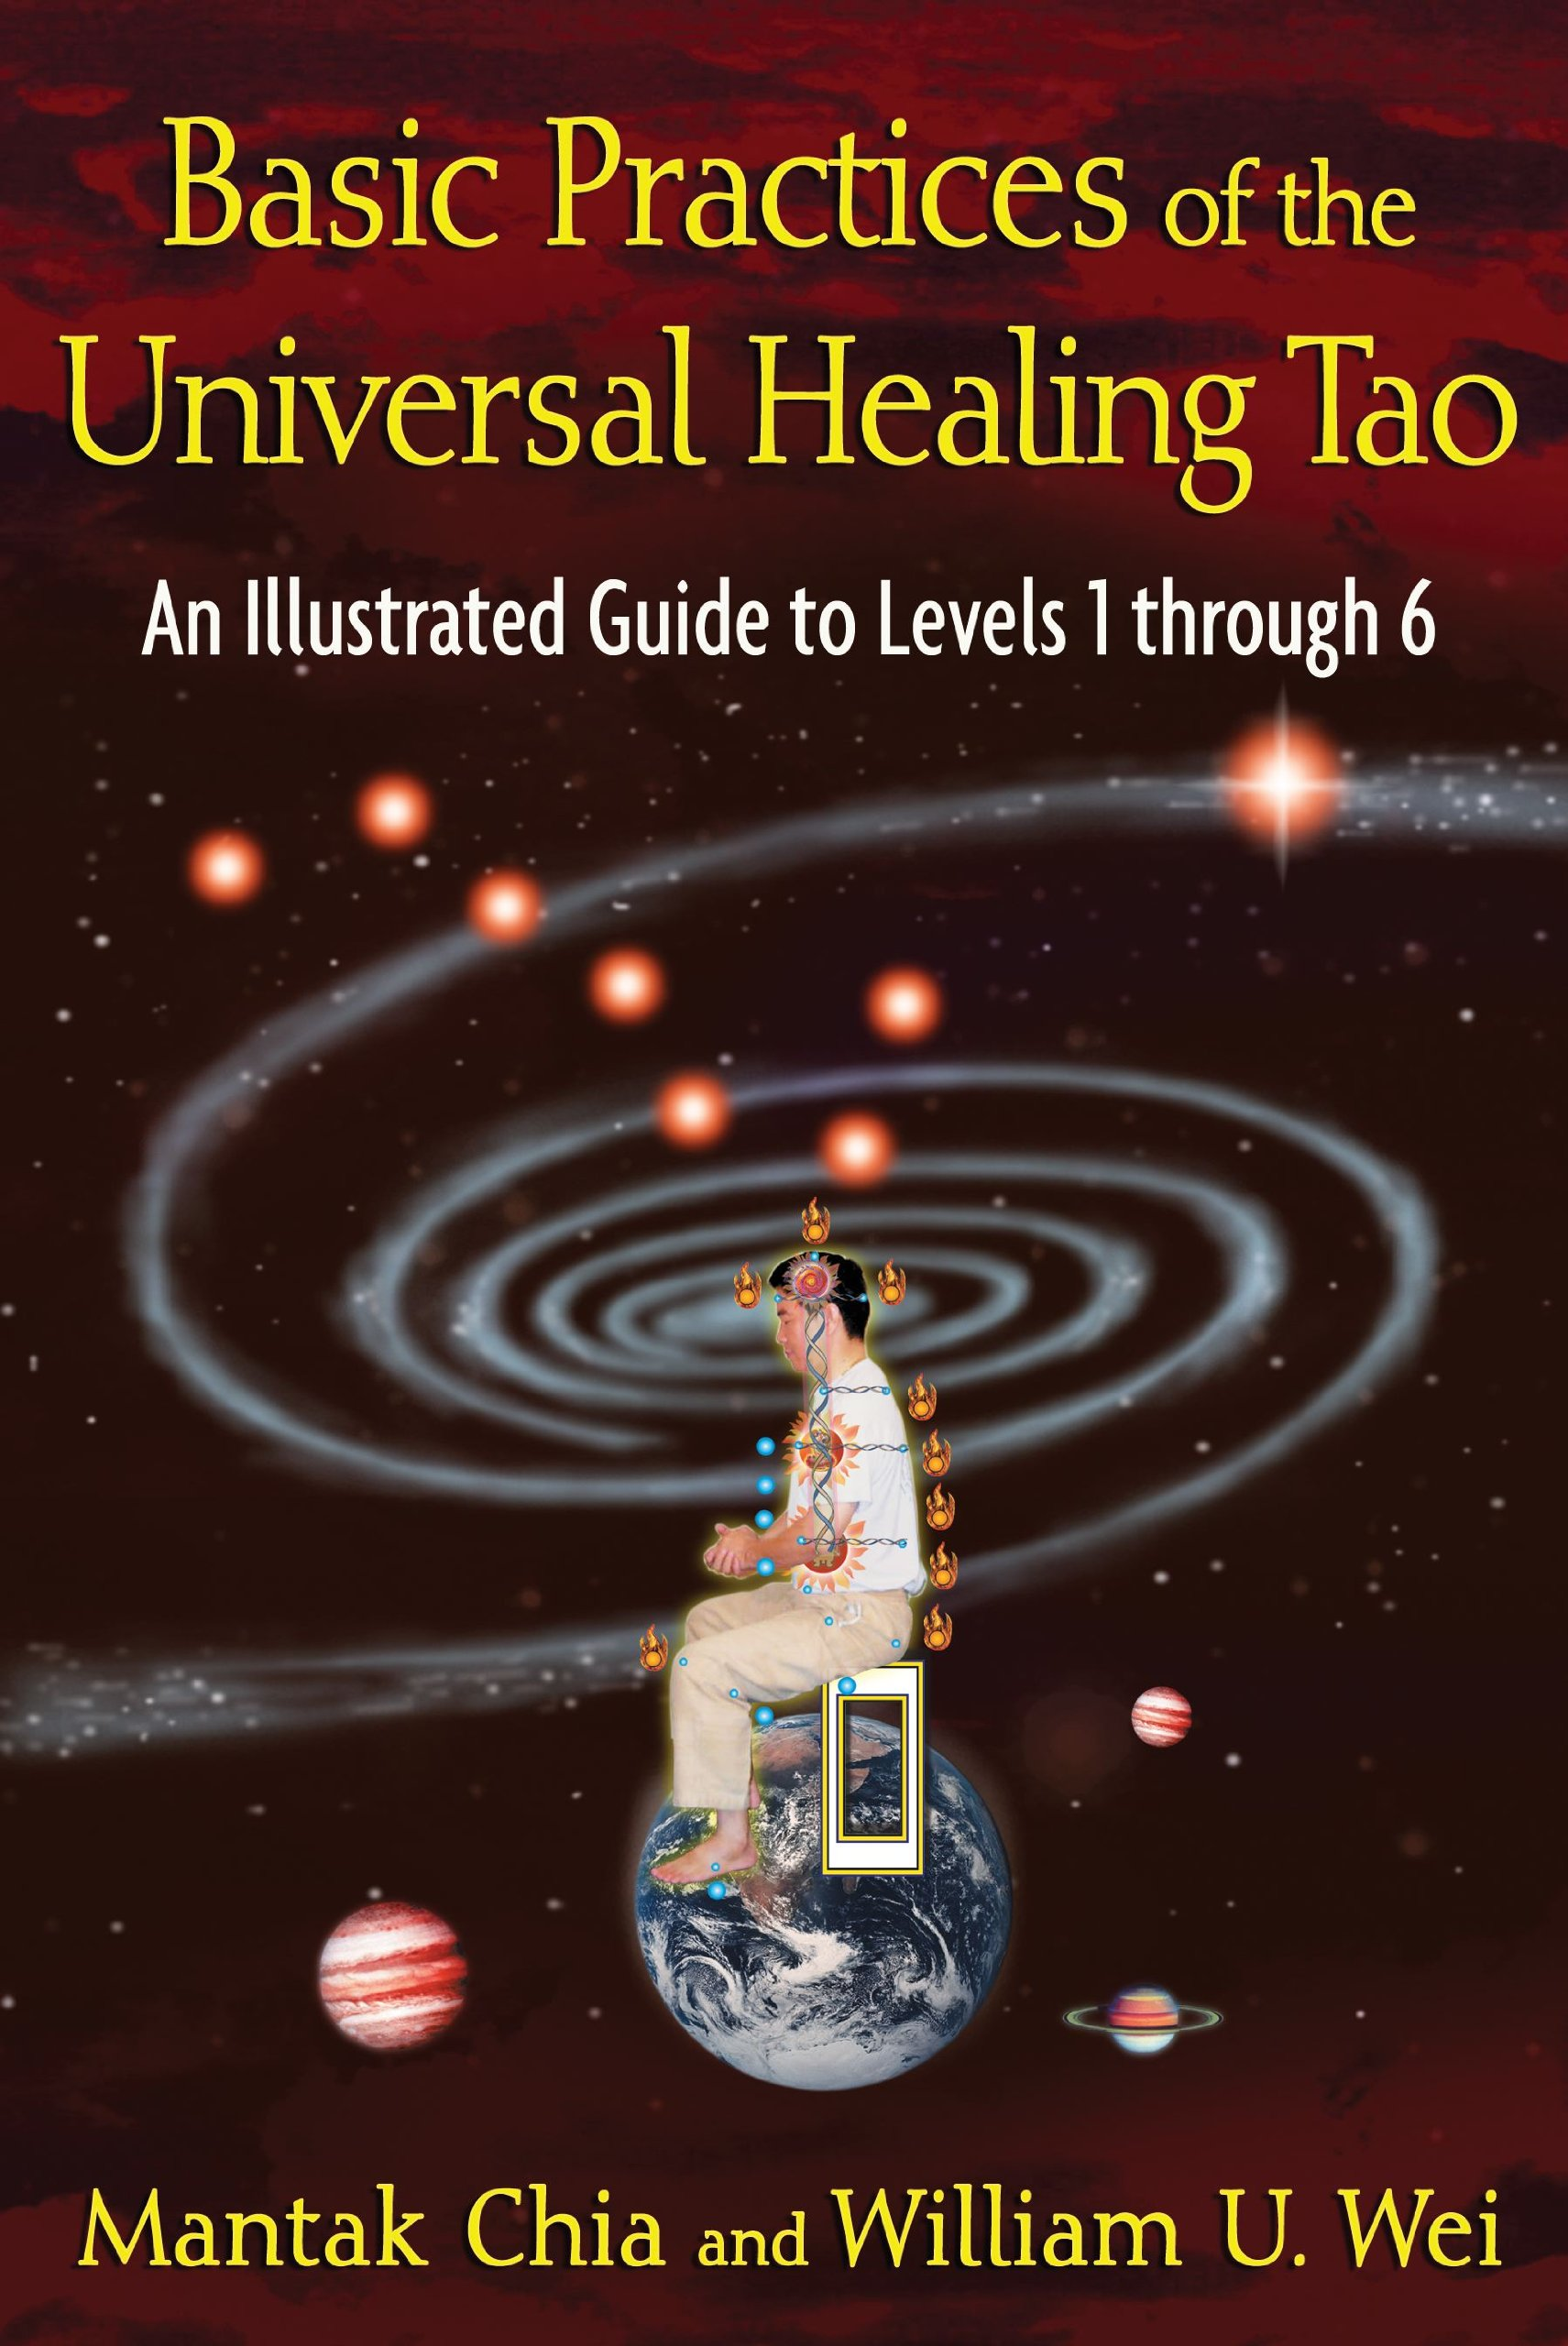 Basic Practices of the Universal Healing Tao: An Illustrated Guide to  Levels 1 through 6: Mantak Chia, William U. Wei: 9781594773341: Amazon.com:  Books